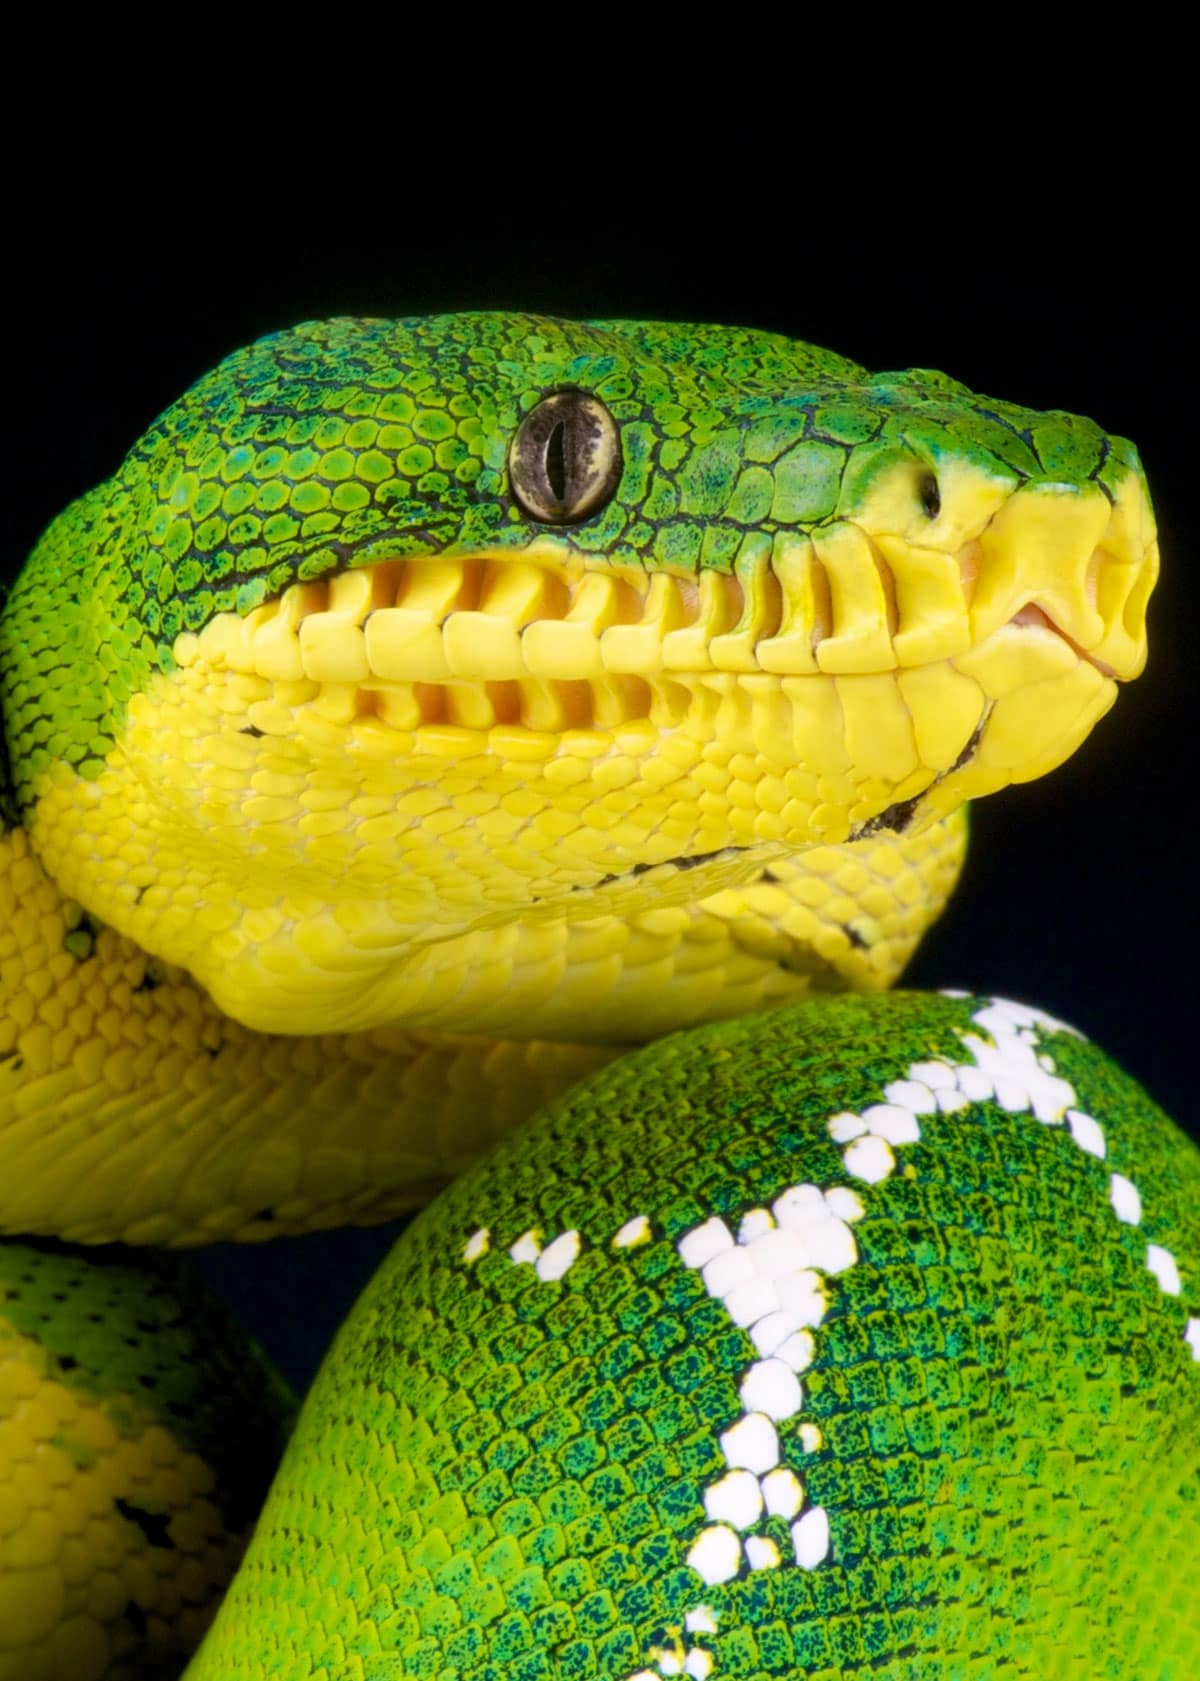 Facts about emerald green boas